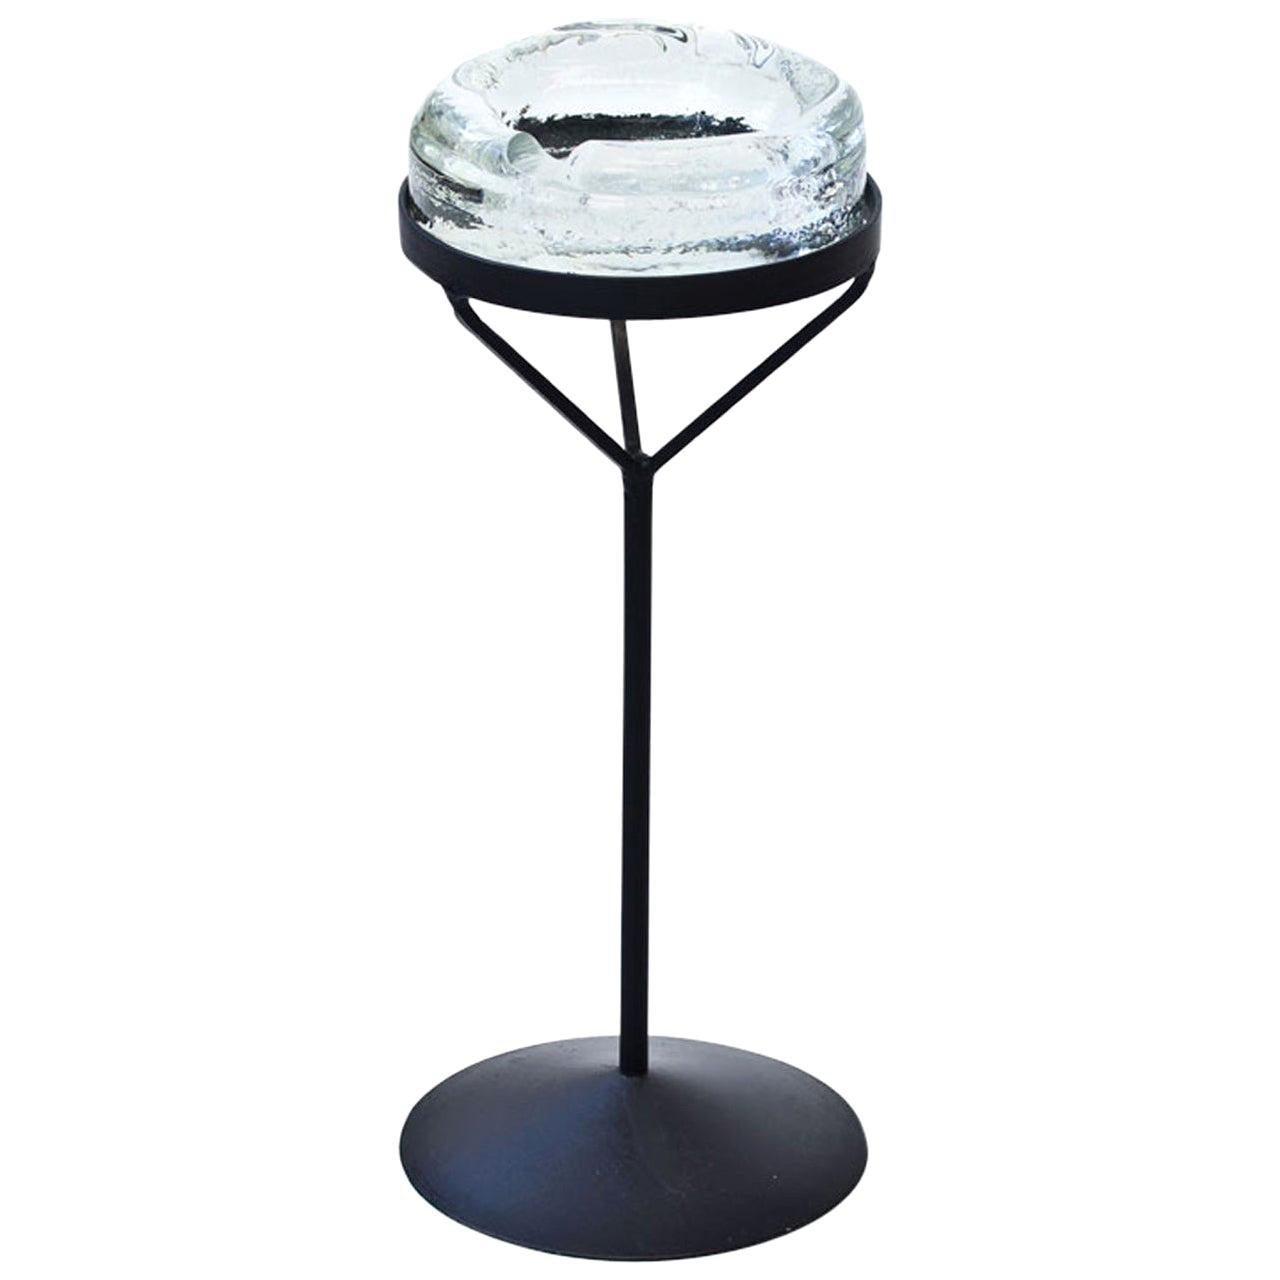 Crystal Glass Ashtray with Iron Stand by Erik Höglund for Boda, Sweden, 1960s